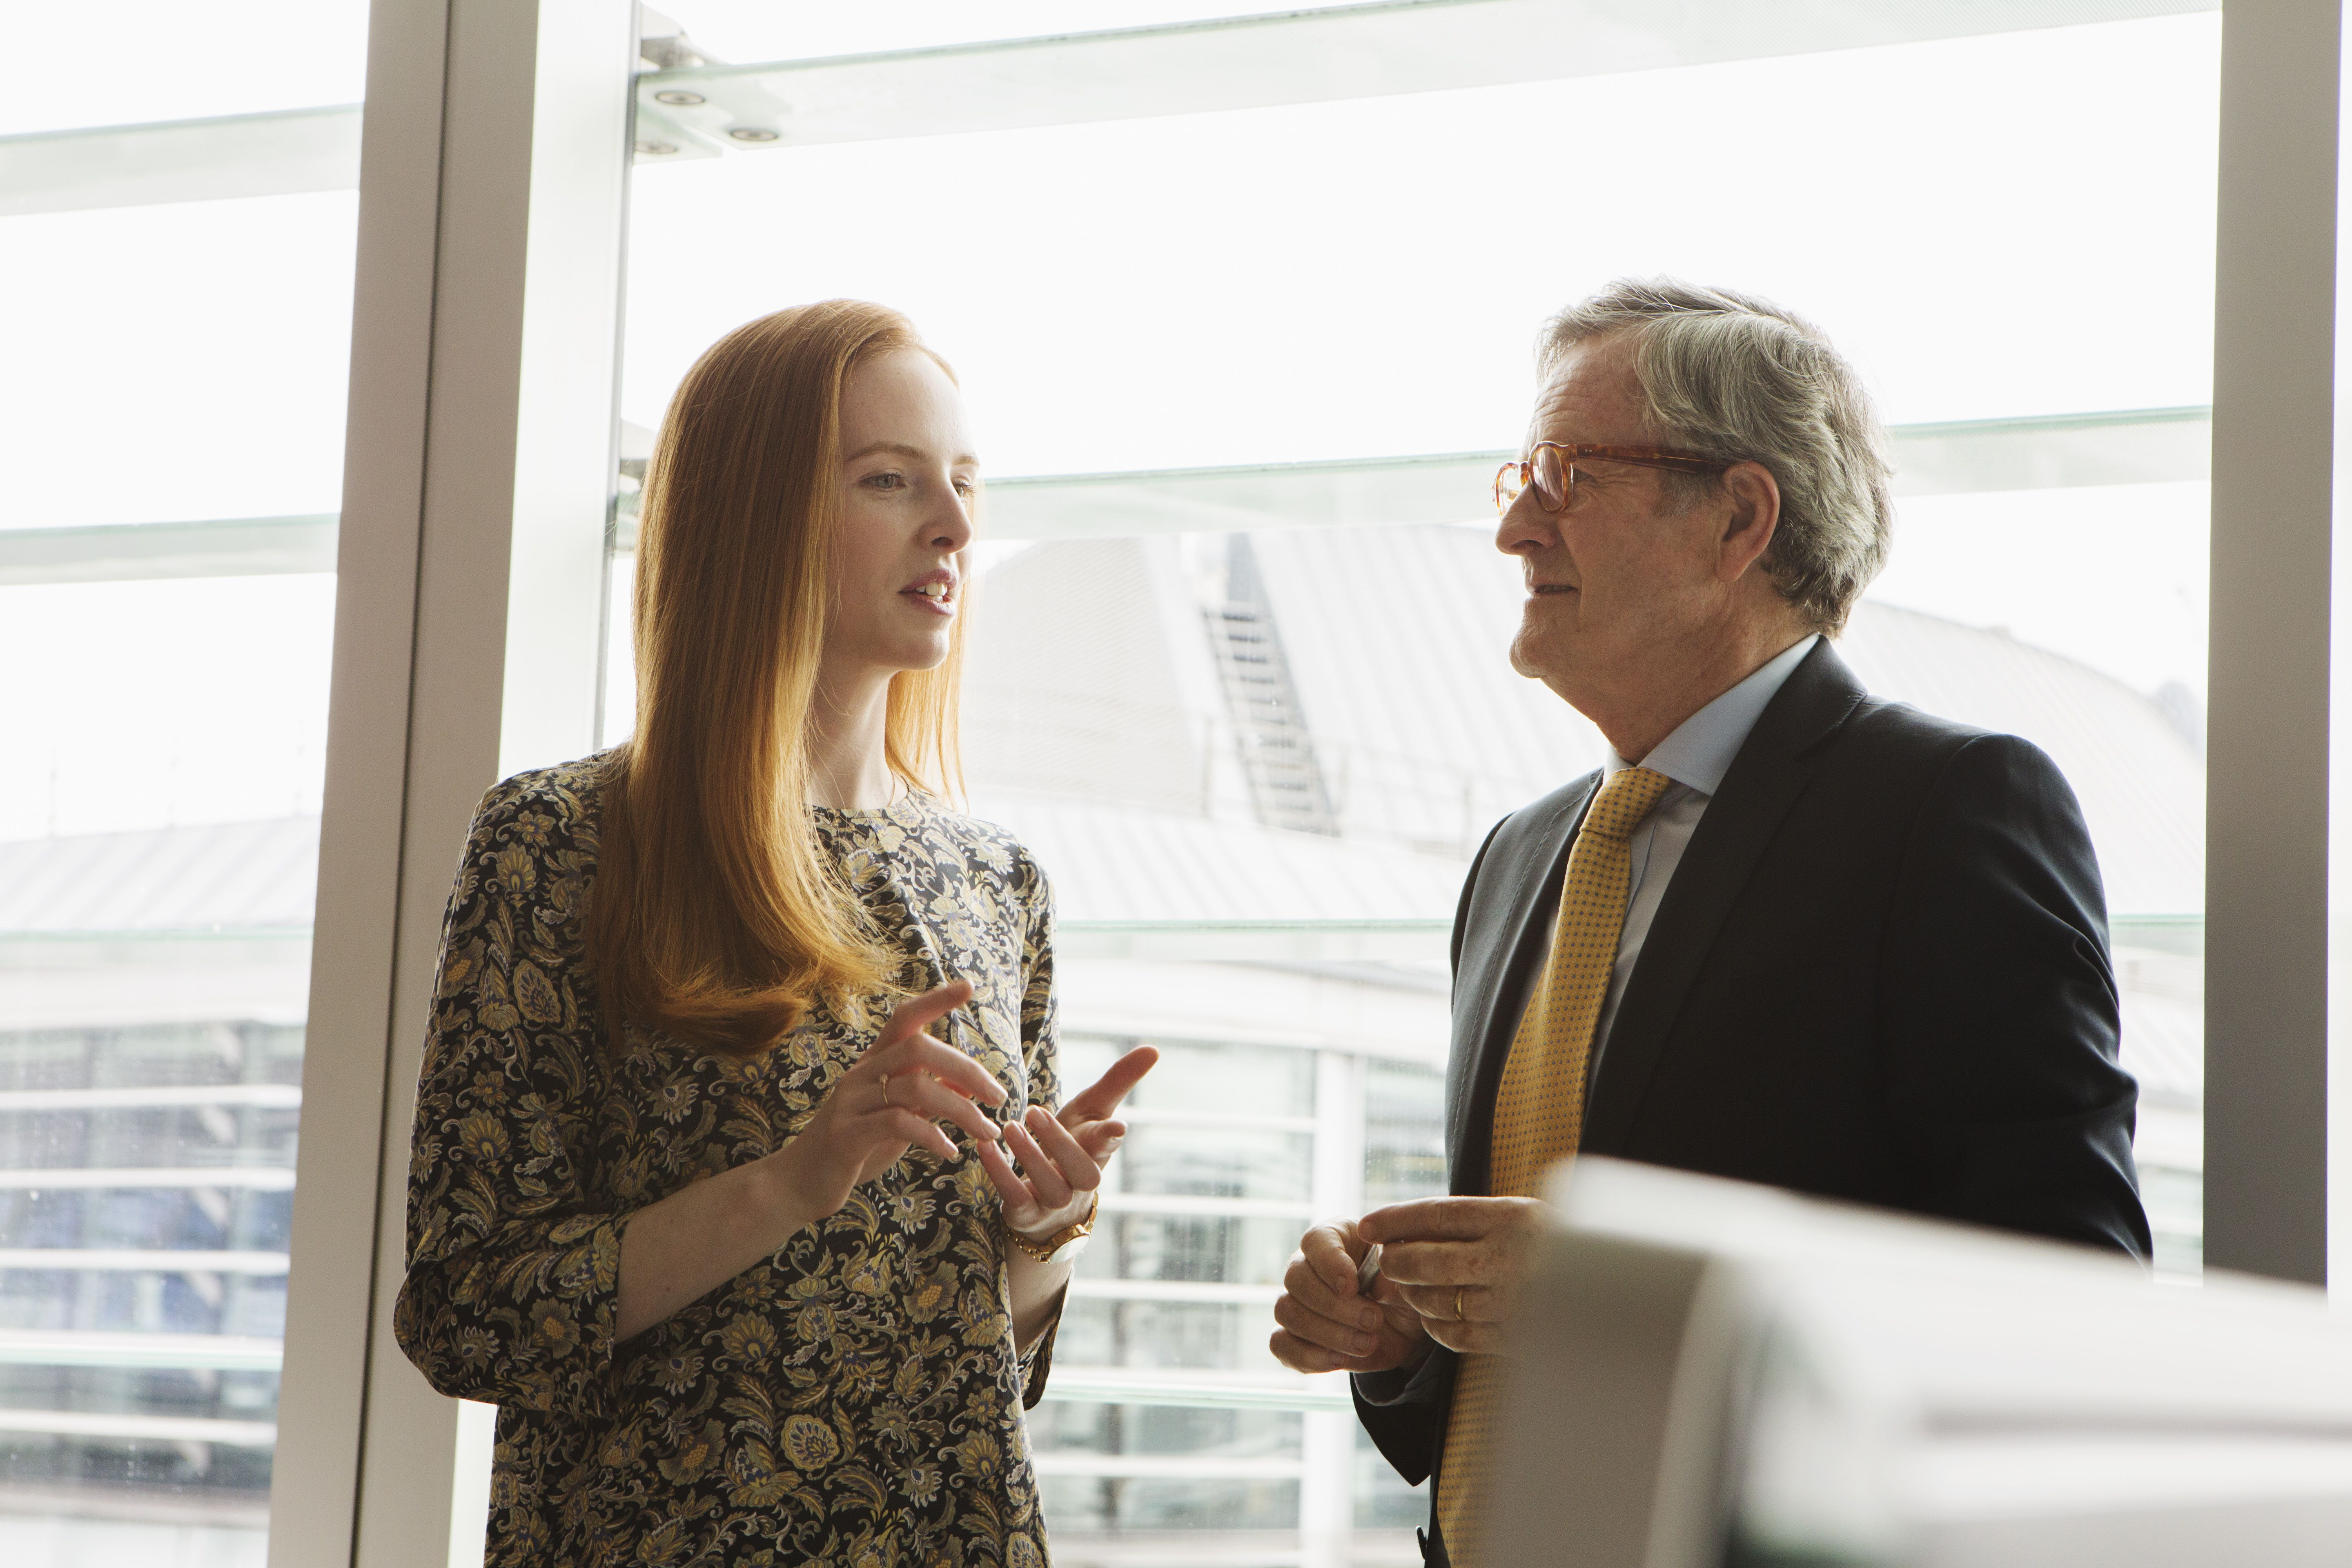 A formal performance appraisal is ineffective and harmful to relationships. They don't work.